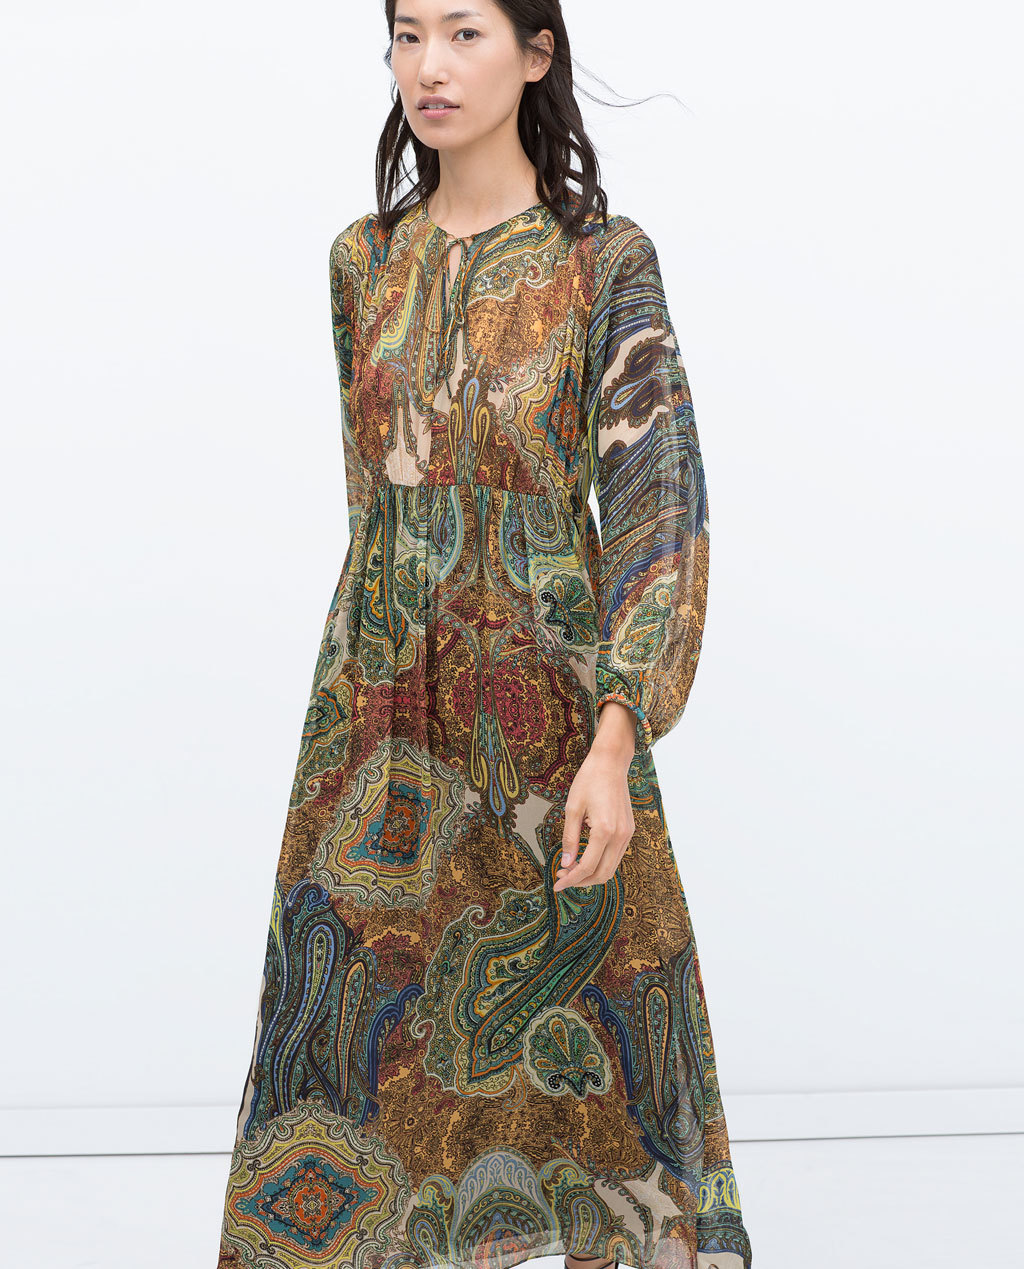 Printed Dress With Oriental Sleeves - neckline: plunge; fit: loose; style: maxi dress; length: ankle length; pattern: paisley; sleeve style: balloon; secondary colour: burgundy; predominant colour: nude; occasions: casual, creative work; fibres: viscose/rayon - 100%; hip detail: subtle/flattering hip detail; sleeve length: long sleeve; texture group: sheer fabrics/chiffon/organza etc.; pattern type: fabric; pattern size: big & busy; season: s/s 2015; multicoloured: multicoloured; wardrobe: highlight